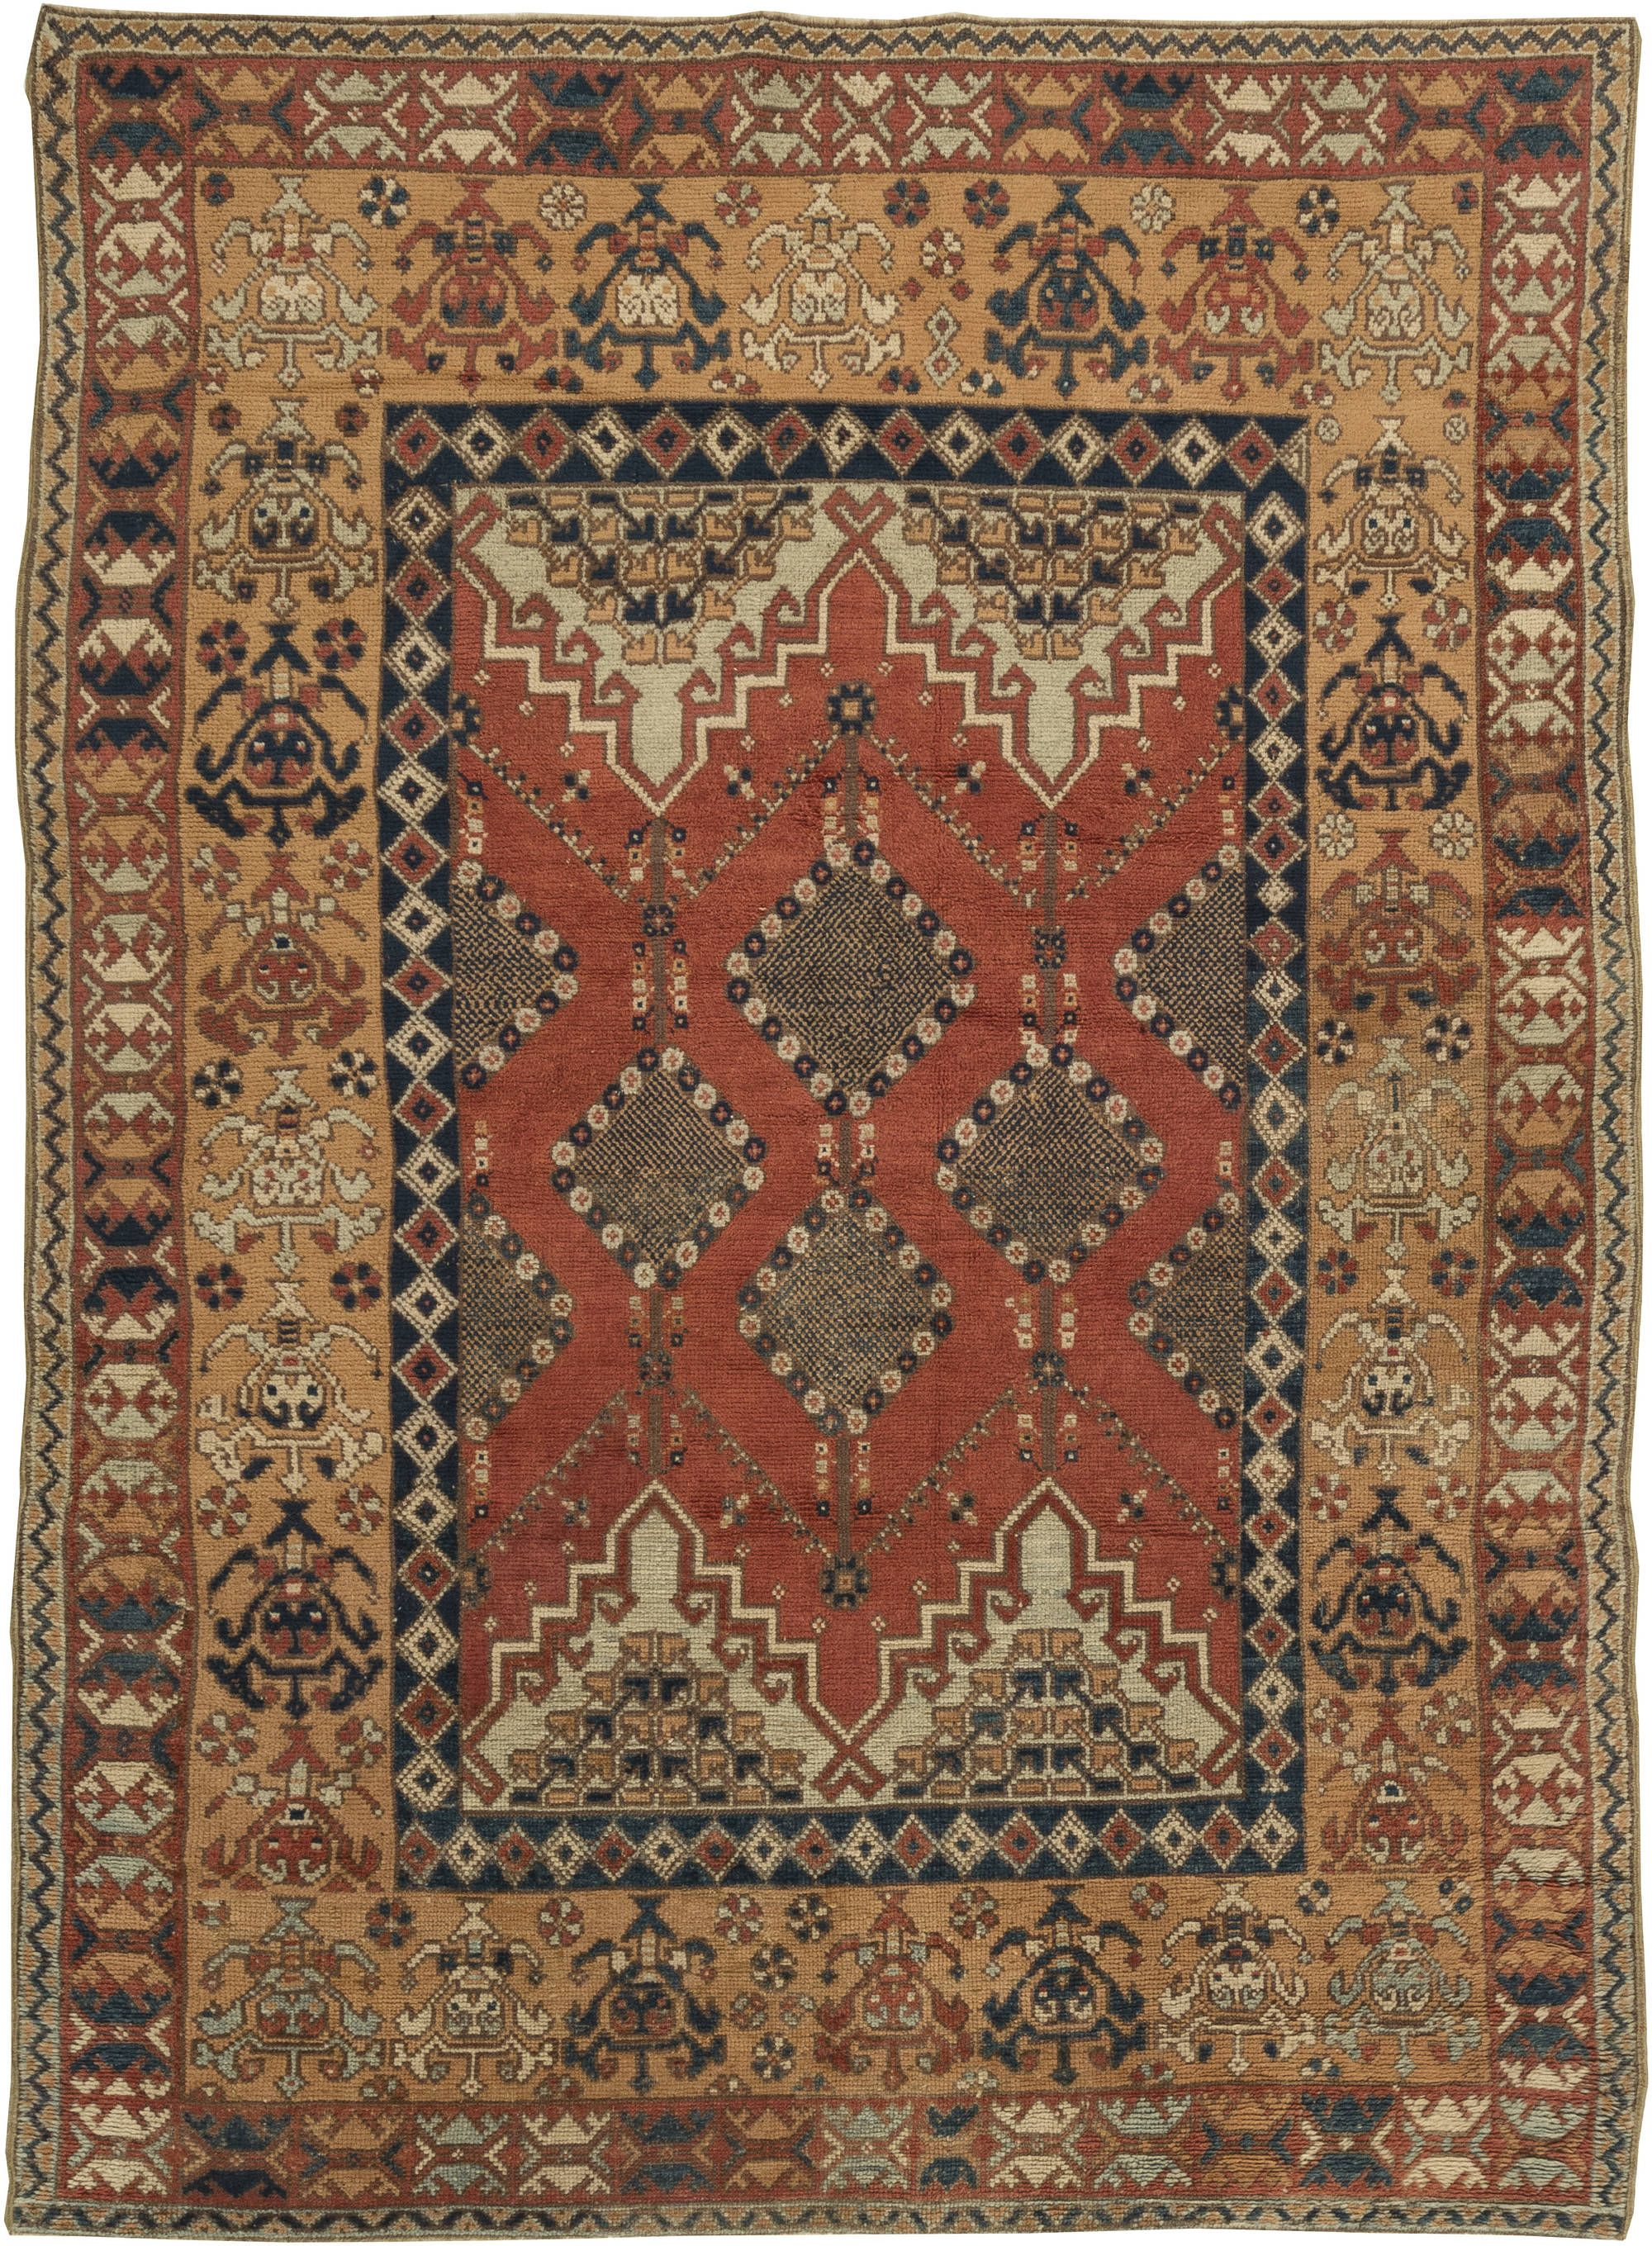 rectangle showroom rugs expo s imported visit dynamic san navy largest diego blue metro bohemian area m rug